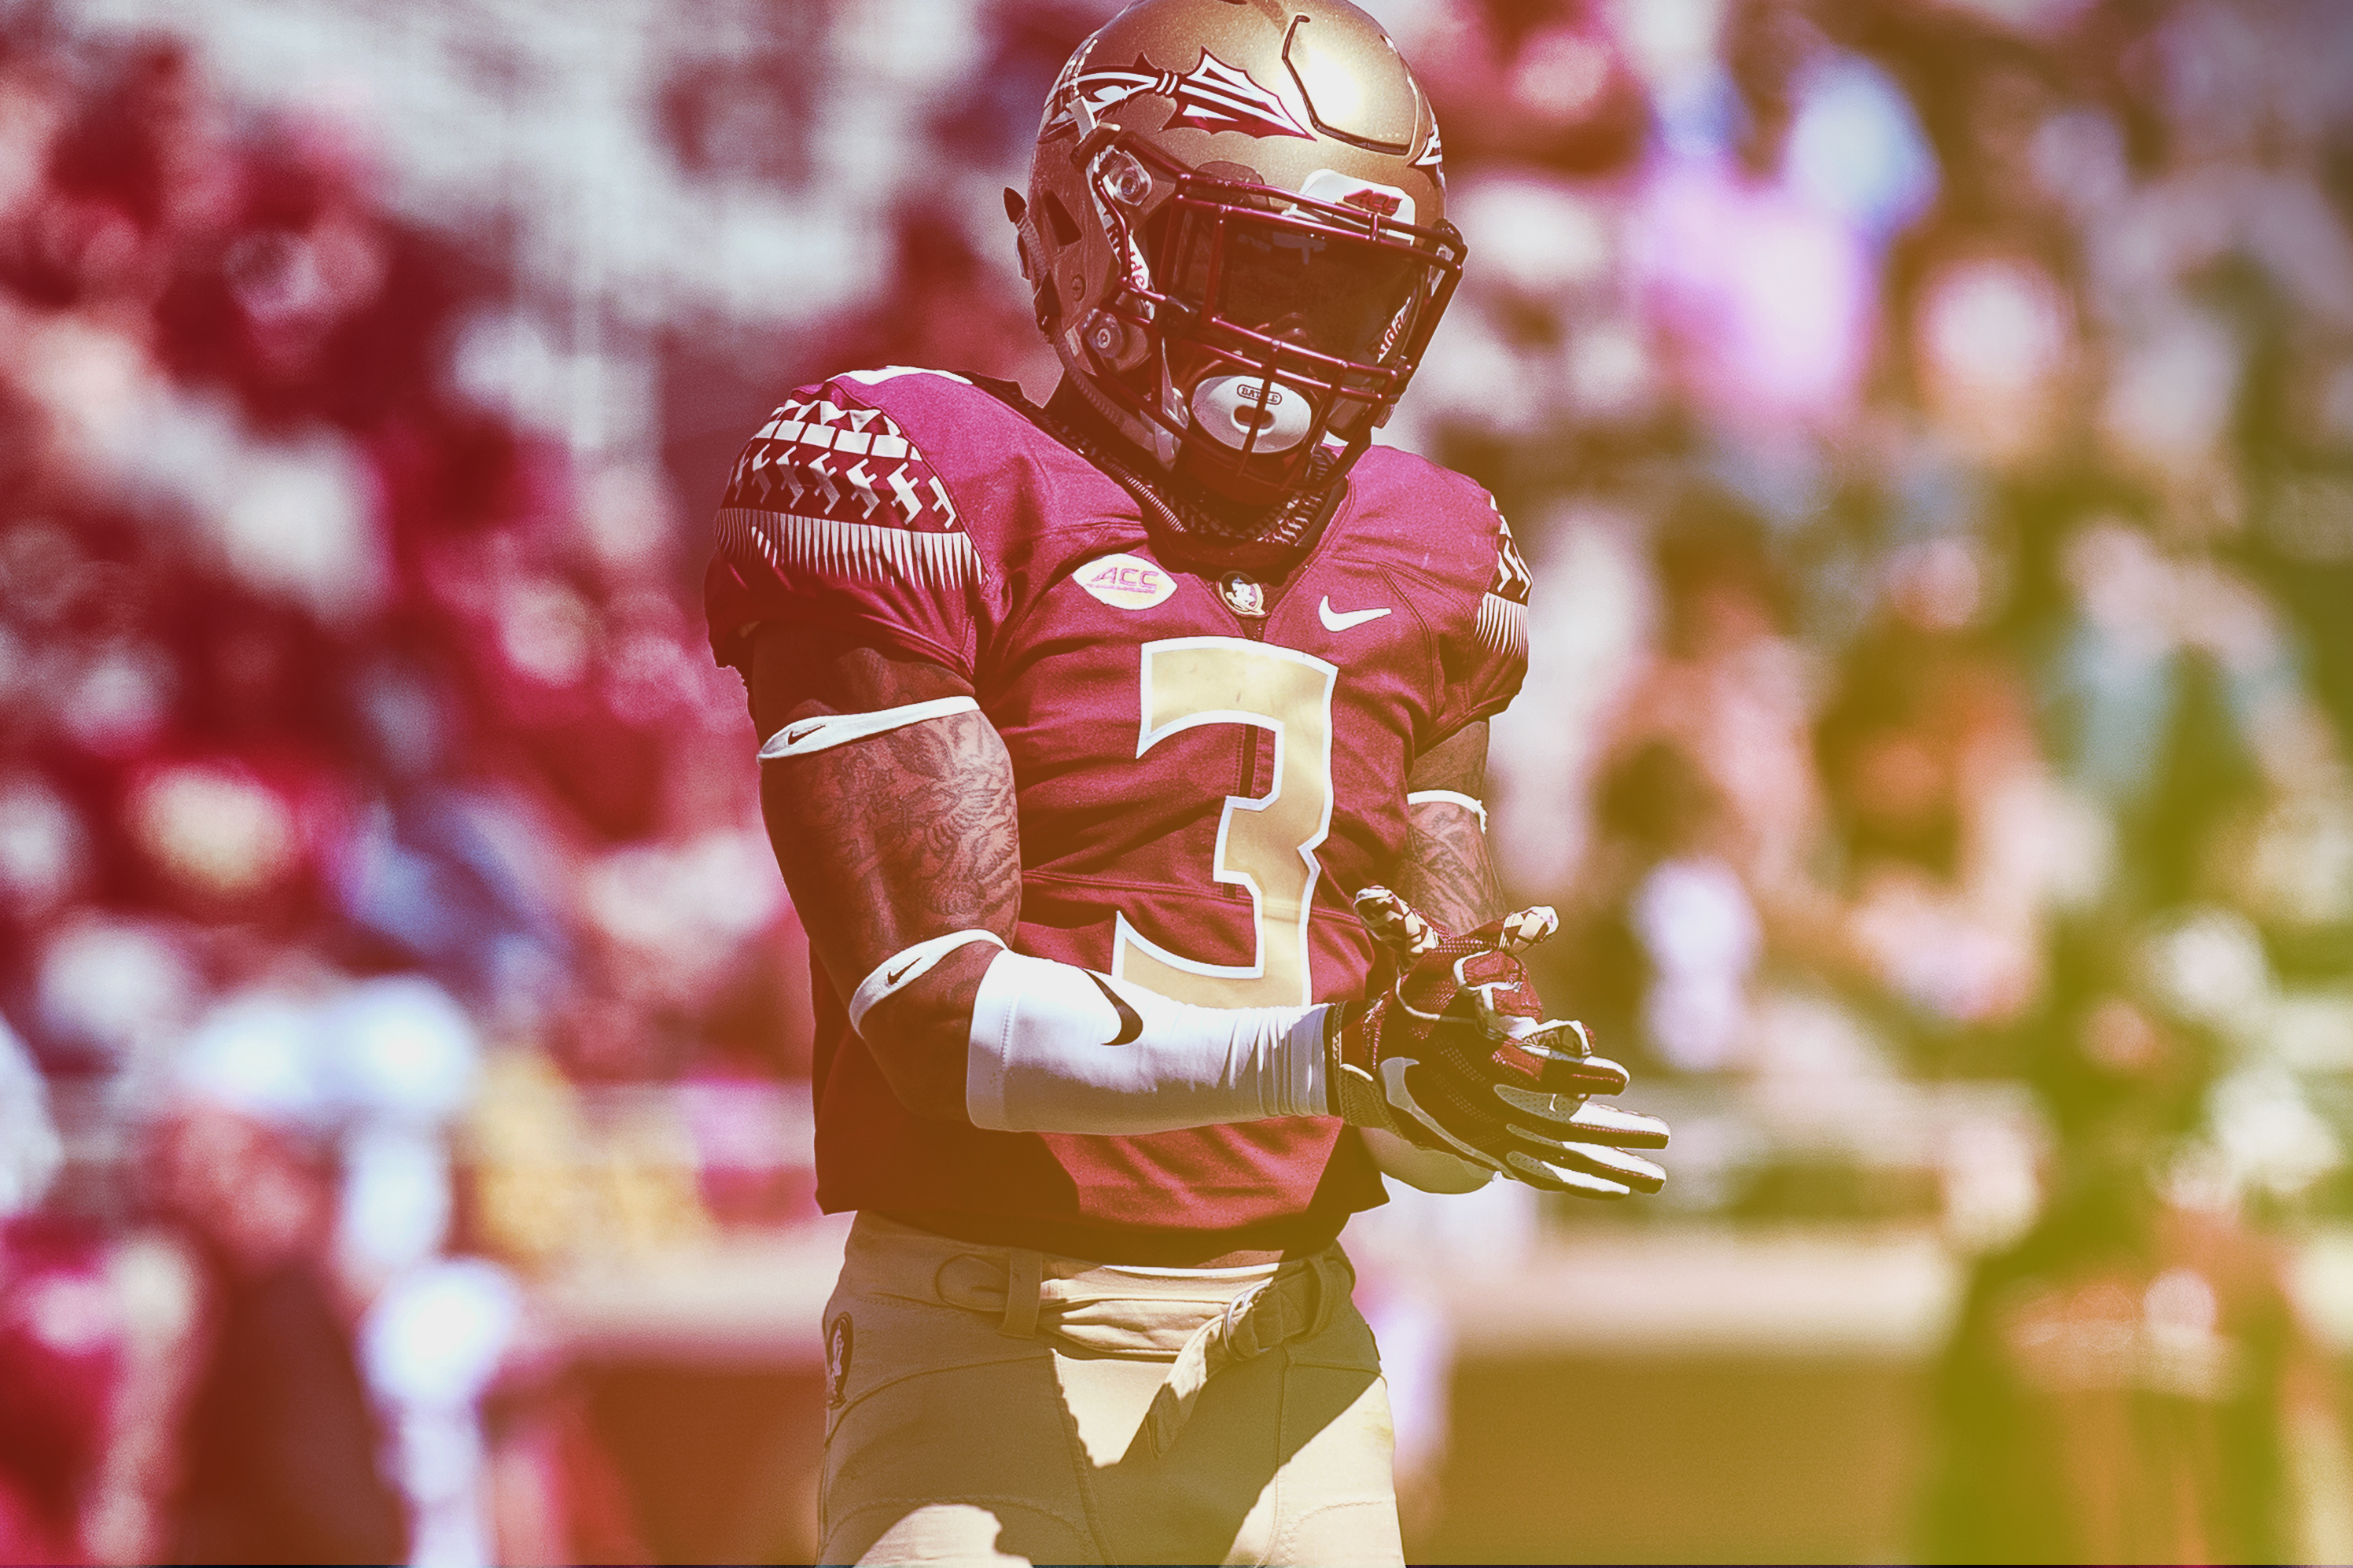 competitive price 6a3df b29d7 There's No Comparison for Him': FSU's Derwin James Is the ...